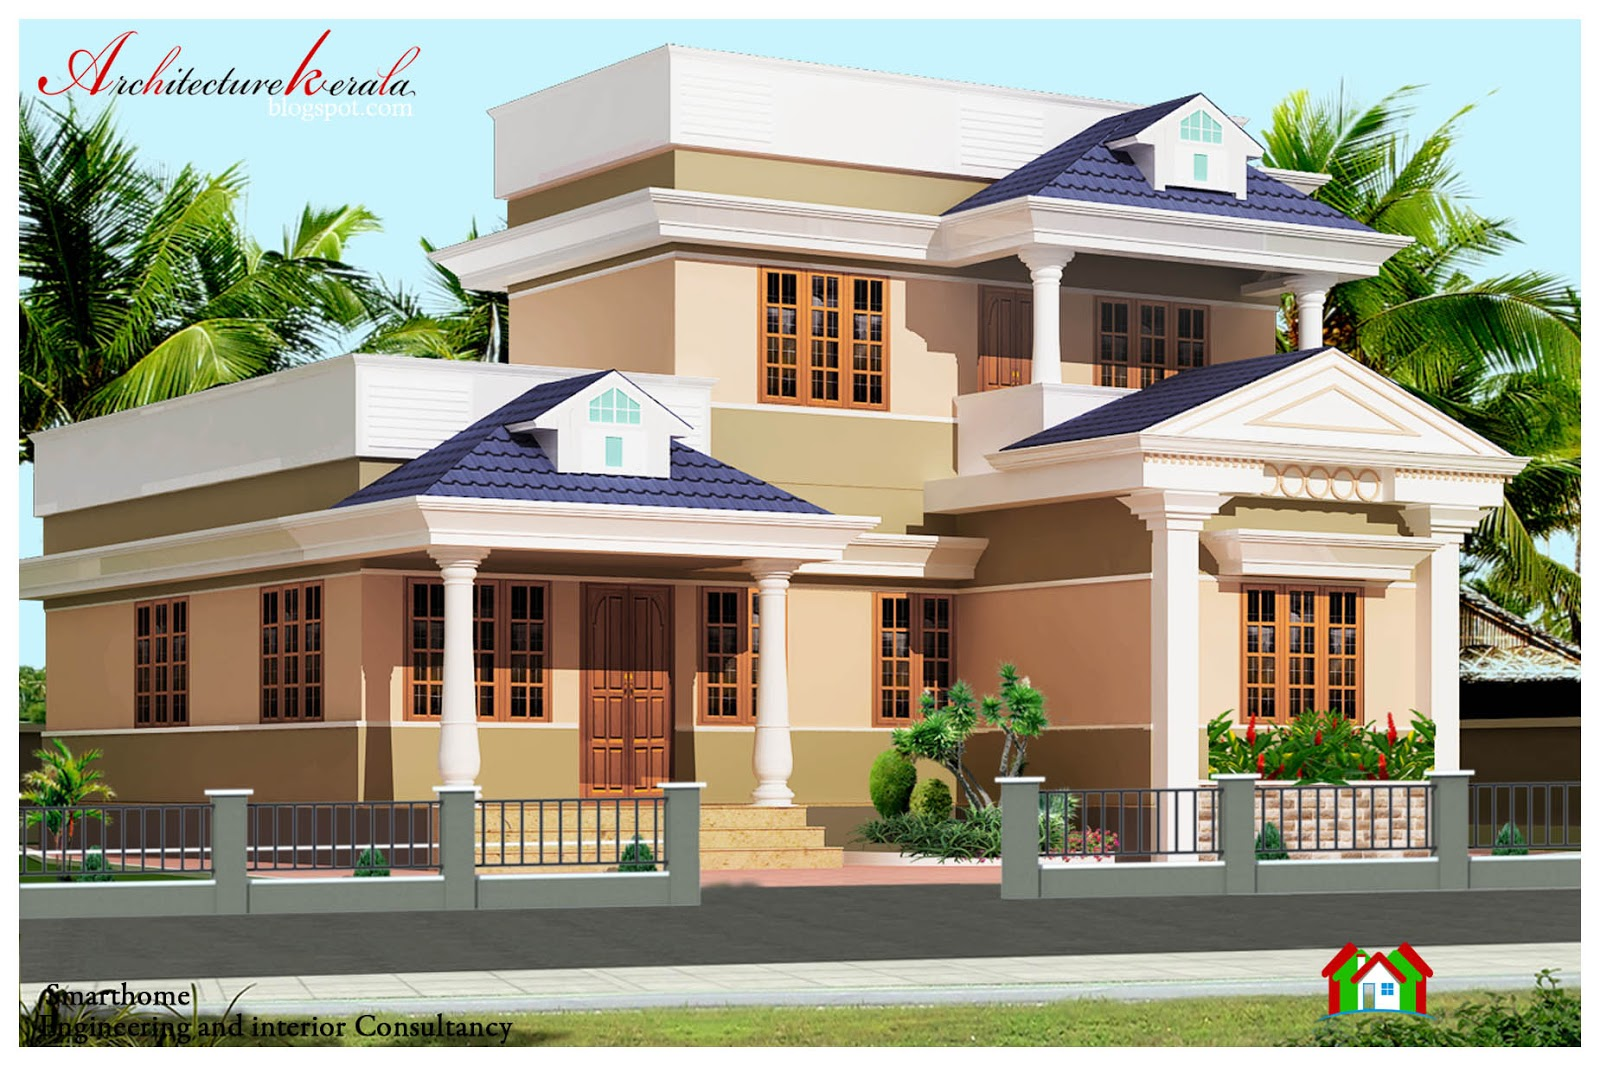 Architecture kerala 1000 sq ft kerala style house plan for Housing plans kerala